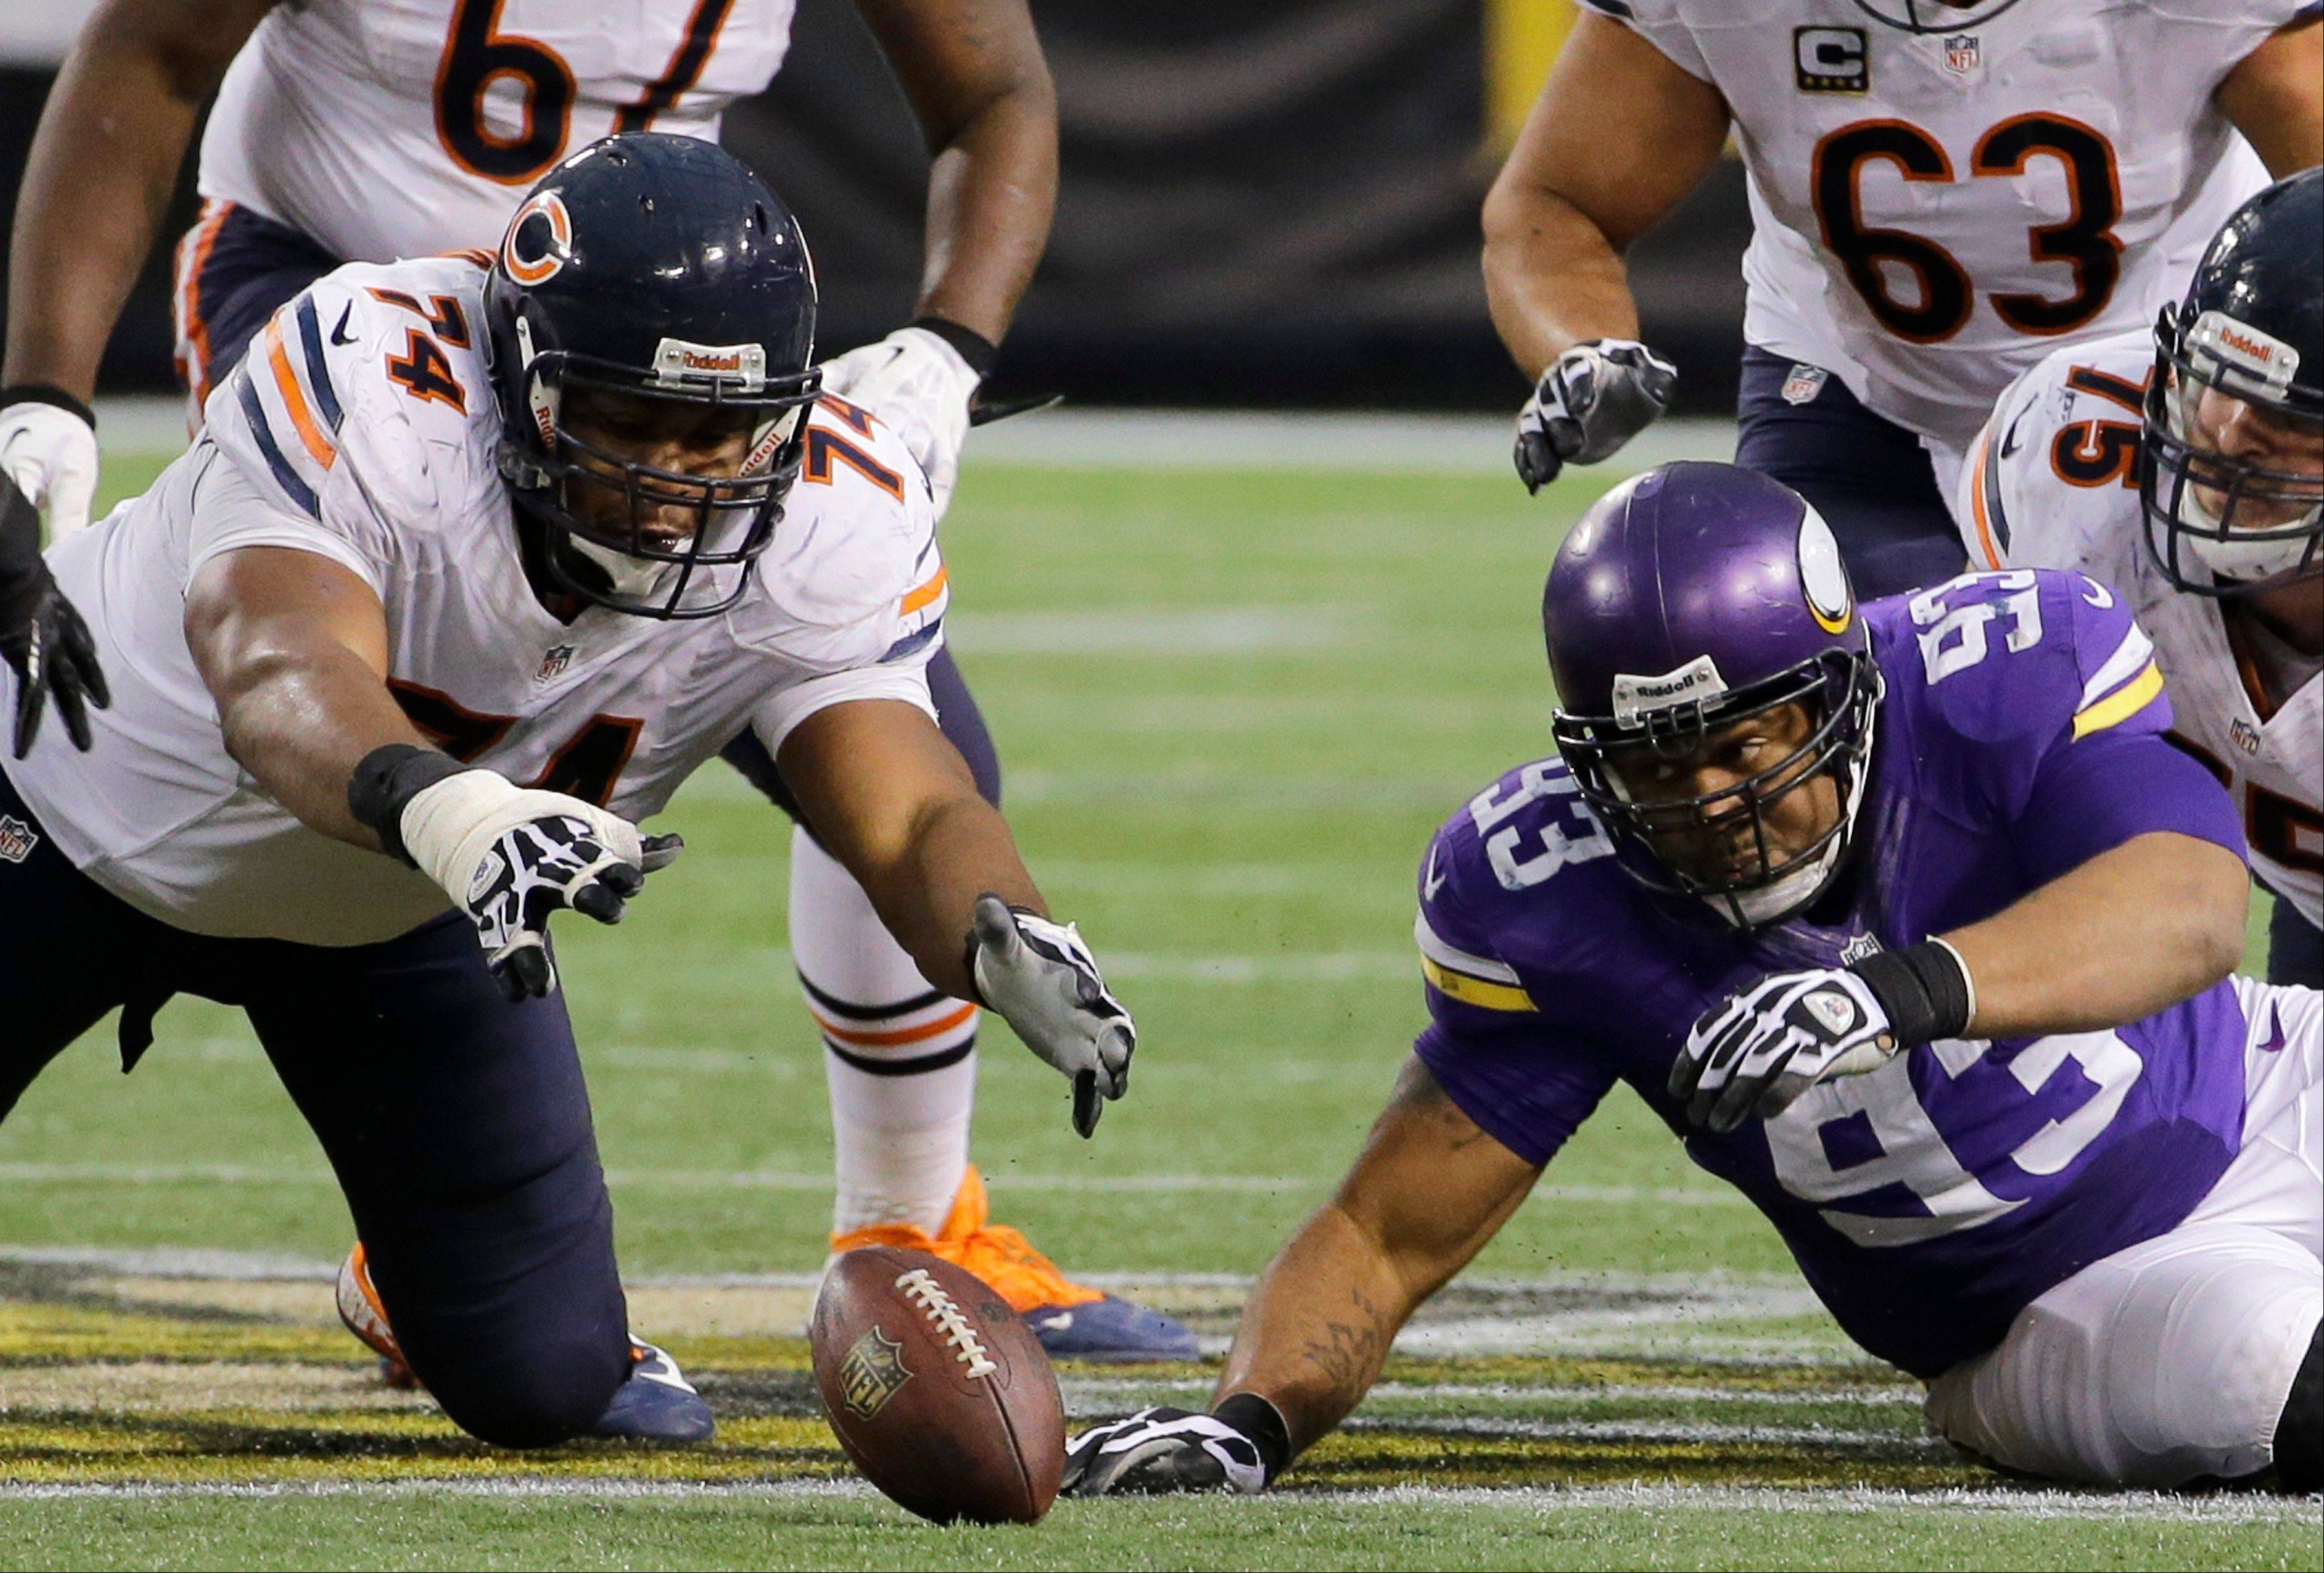 Chicago Bears tackle Jermon Bushrod, left, and Minnesota Vikings defensive tackle Kevin Williams, right, eye a fumble during the fourth quarter. The Vikings won 23-20 in overtime.